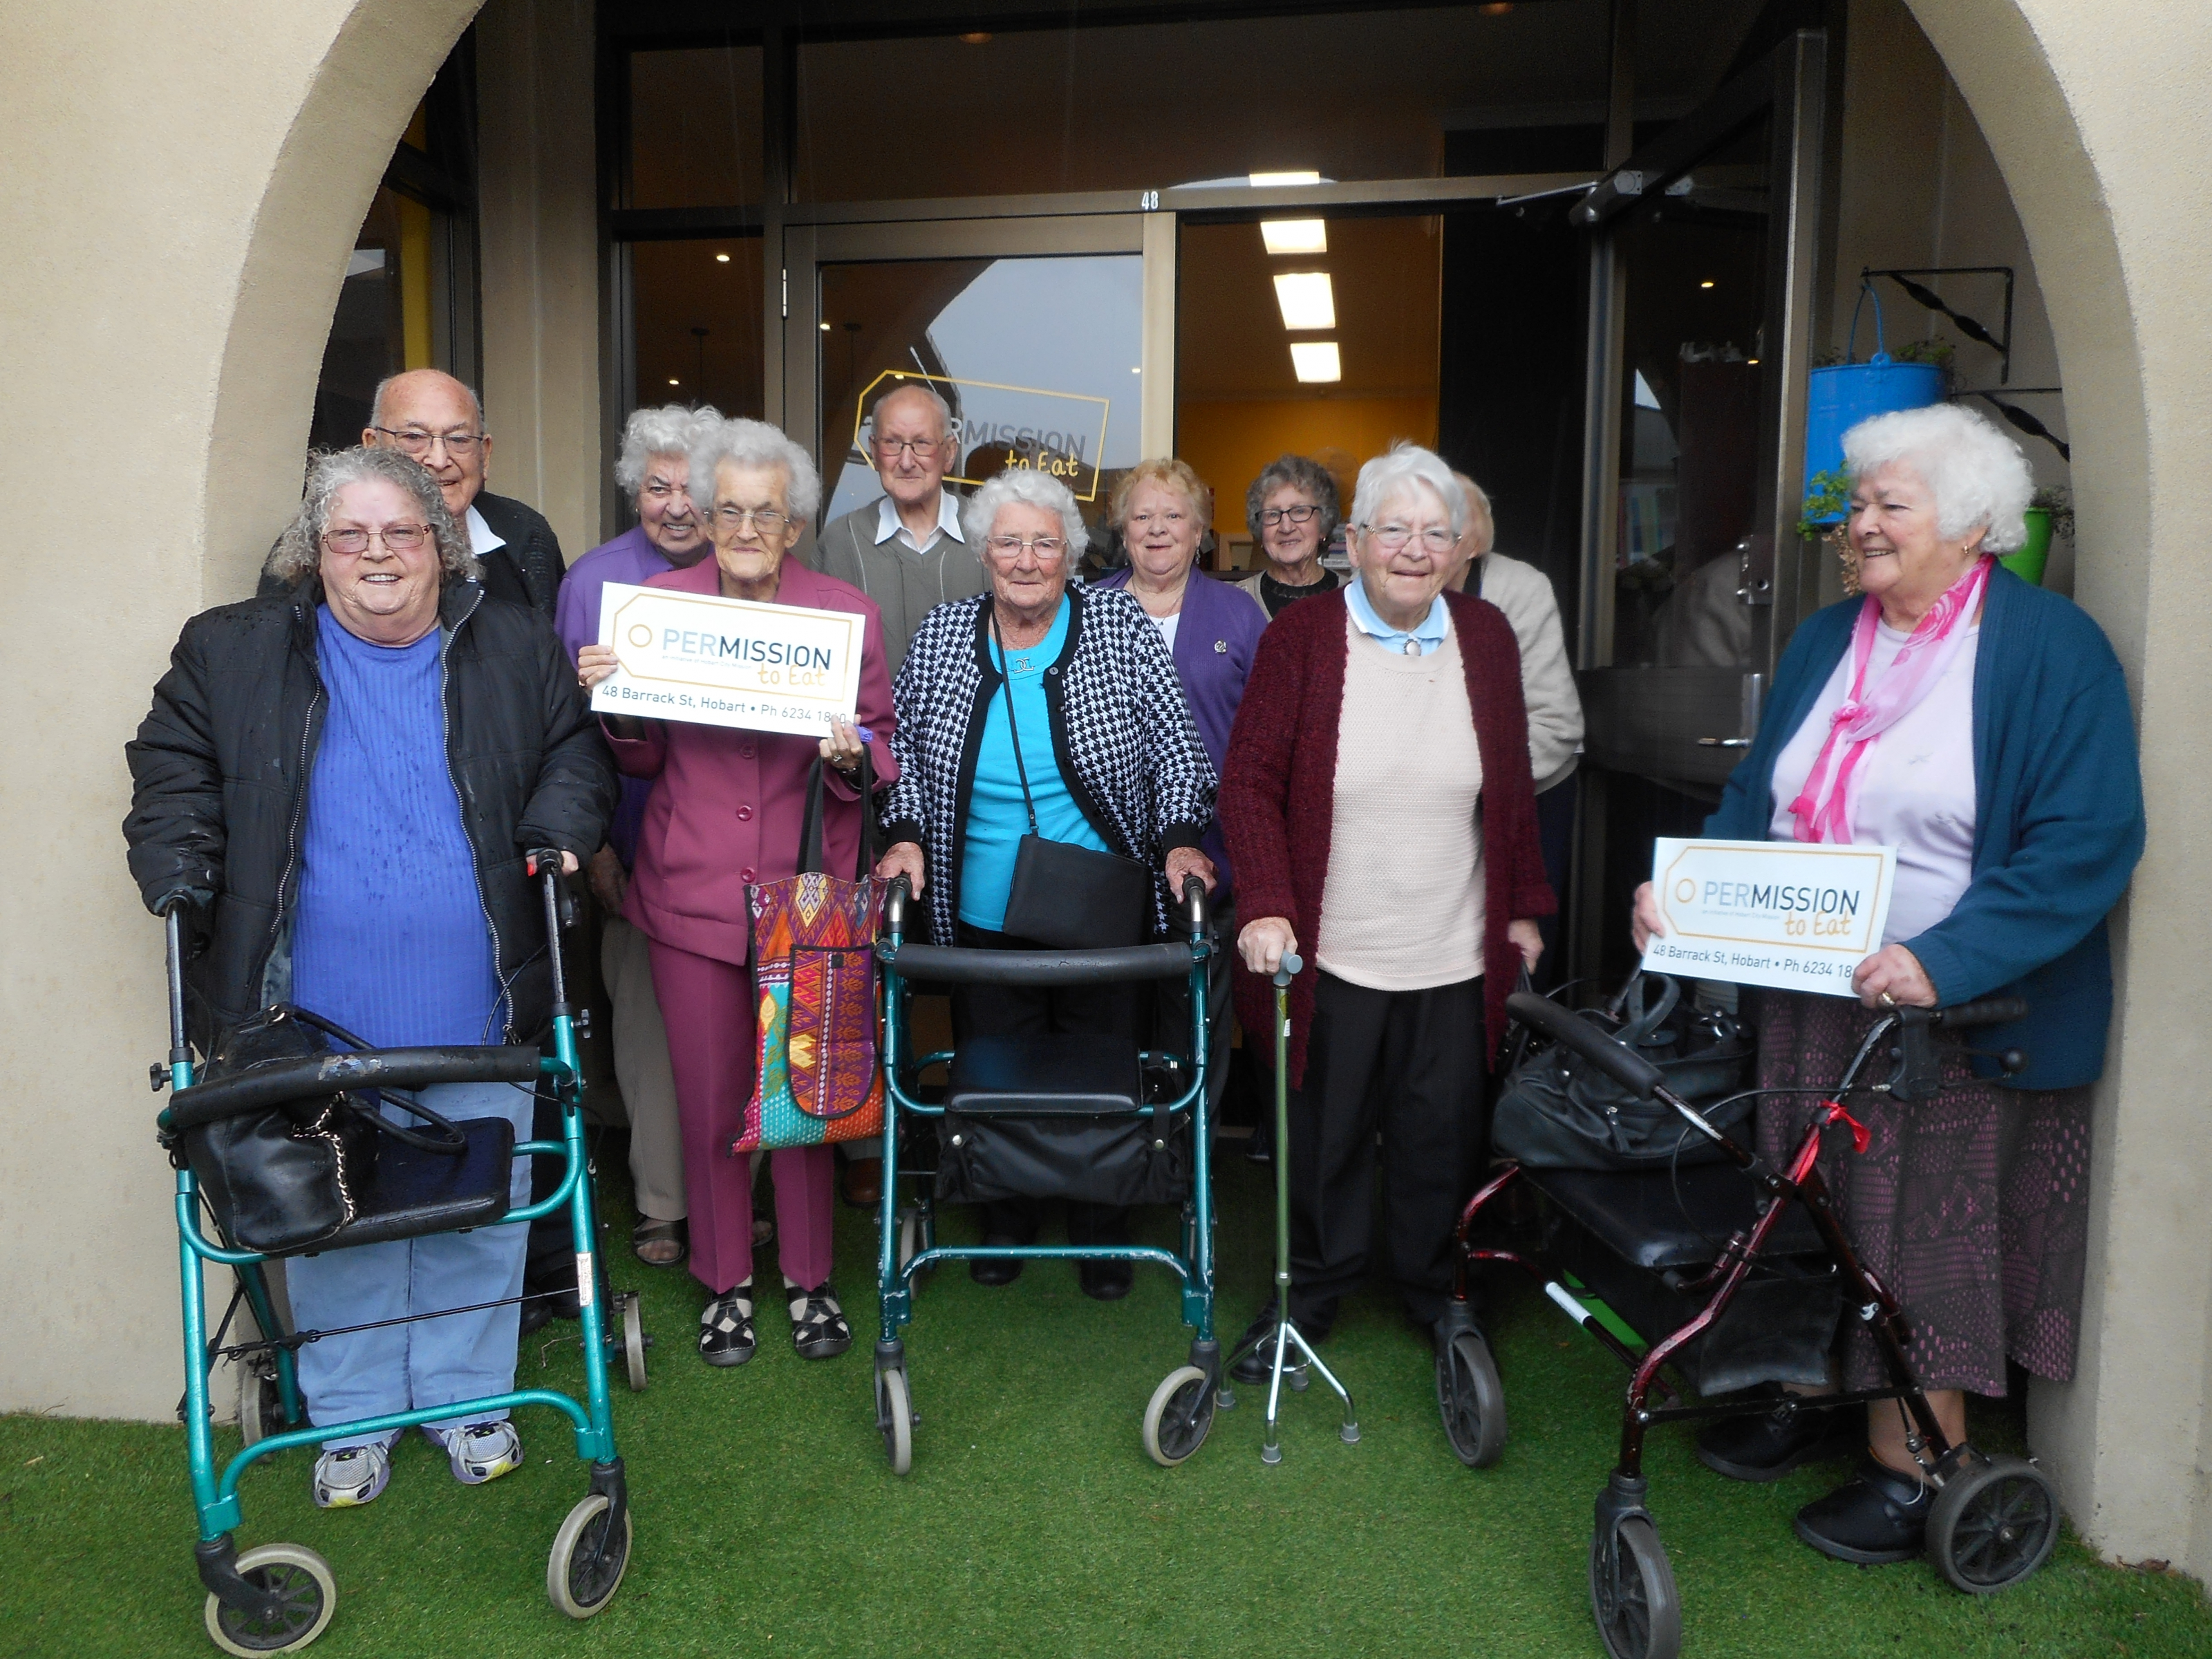 Sorell Day Centre Mission visit